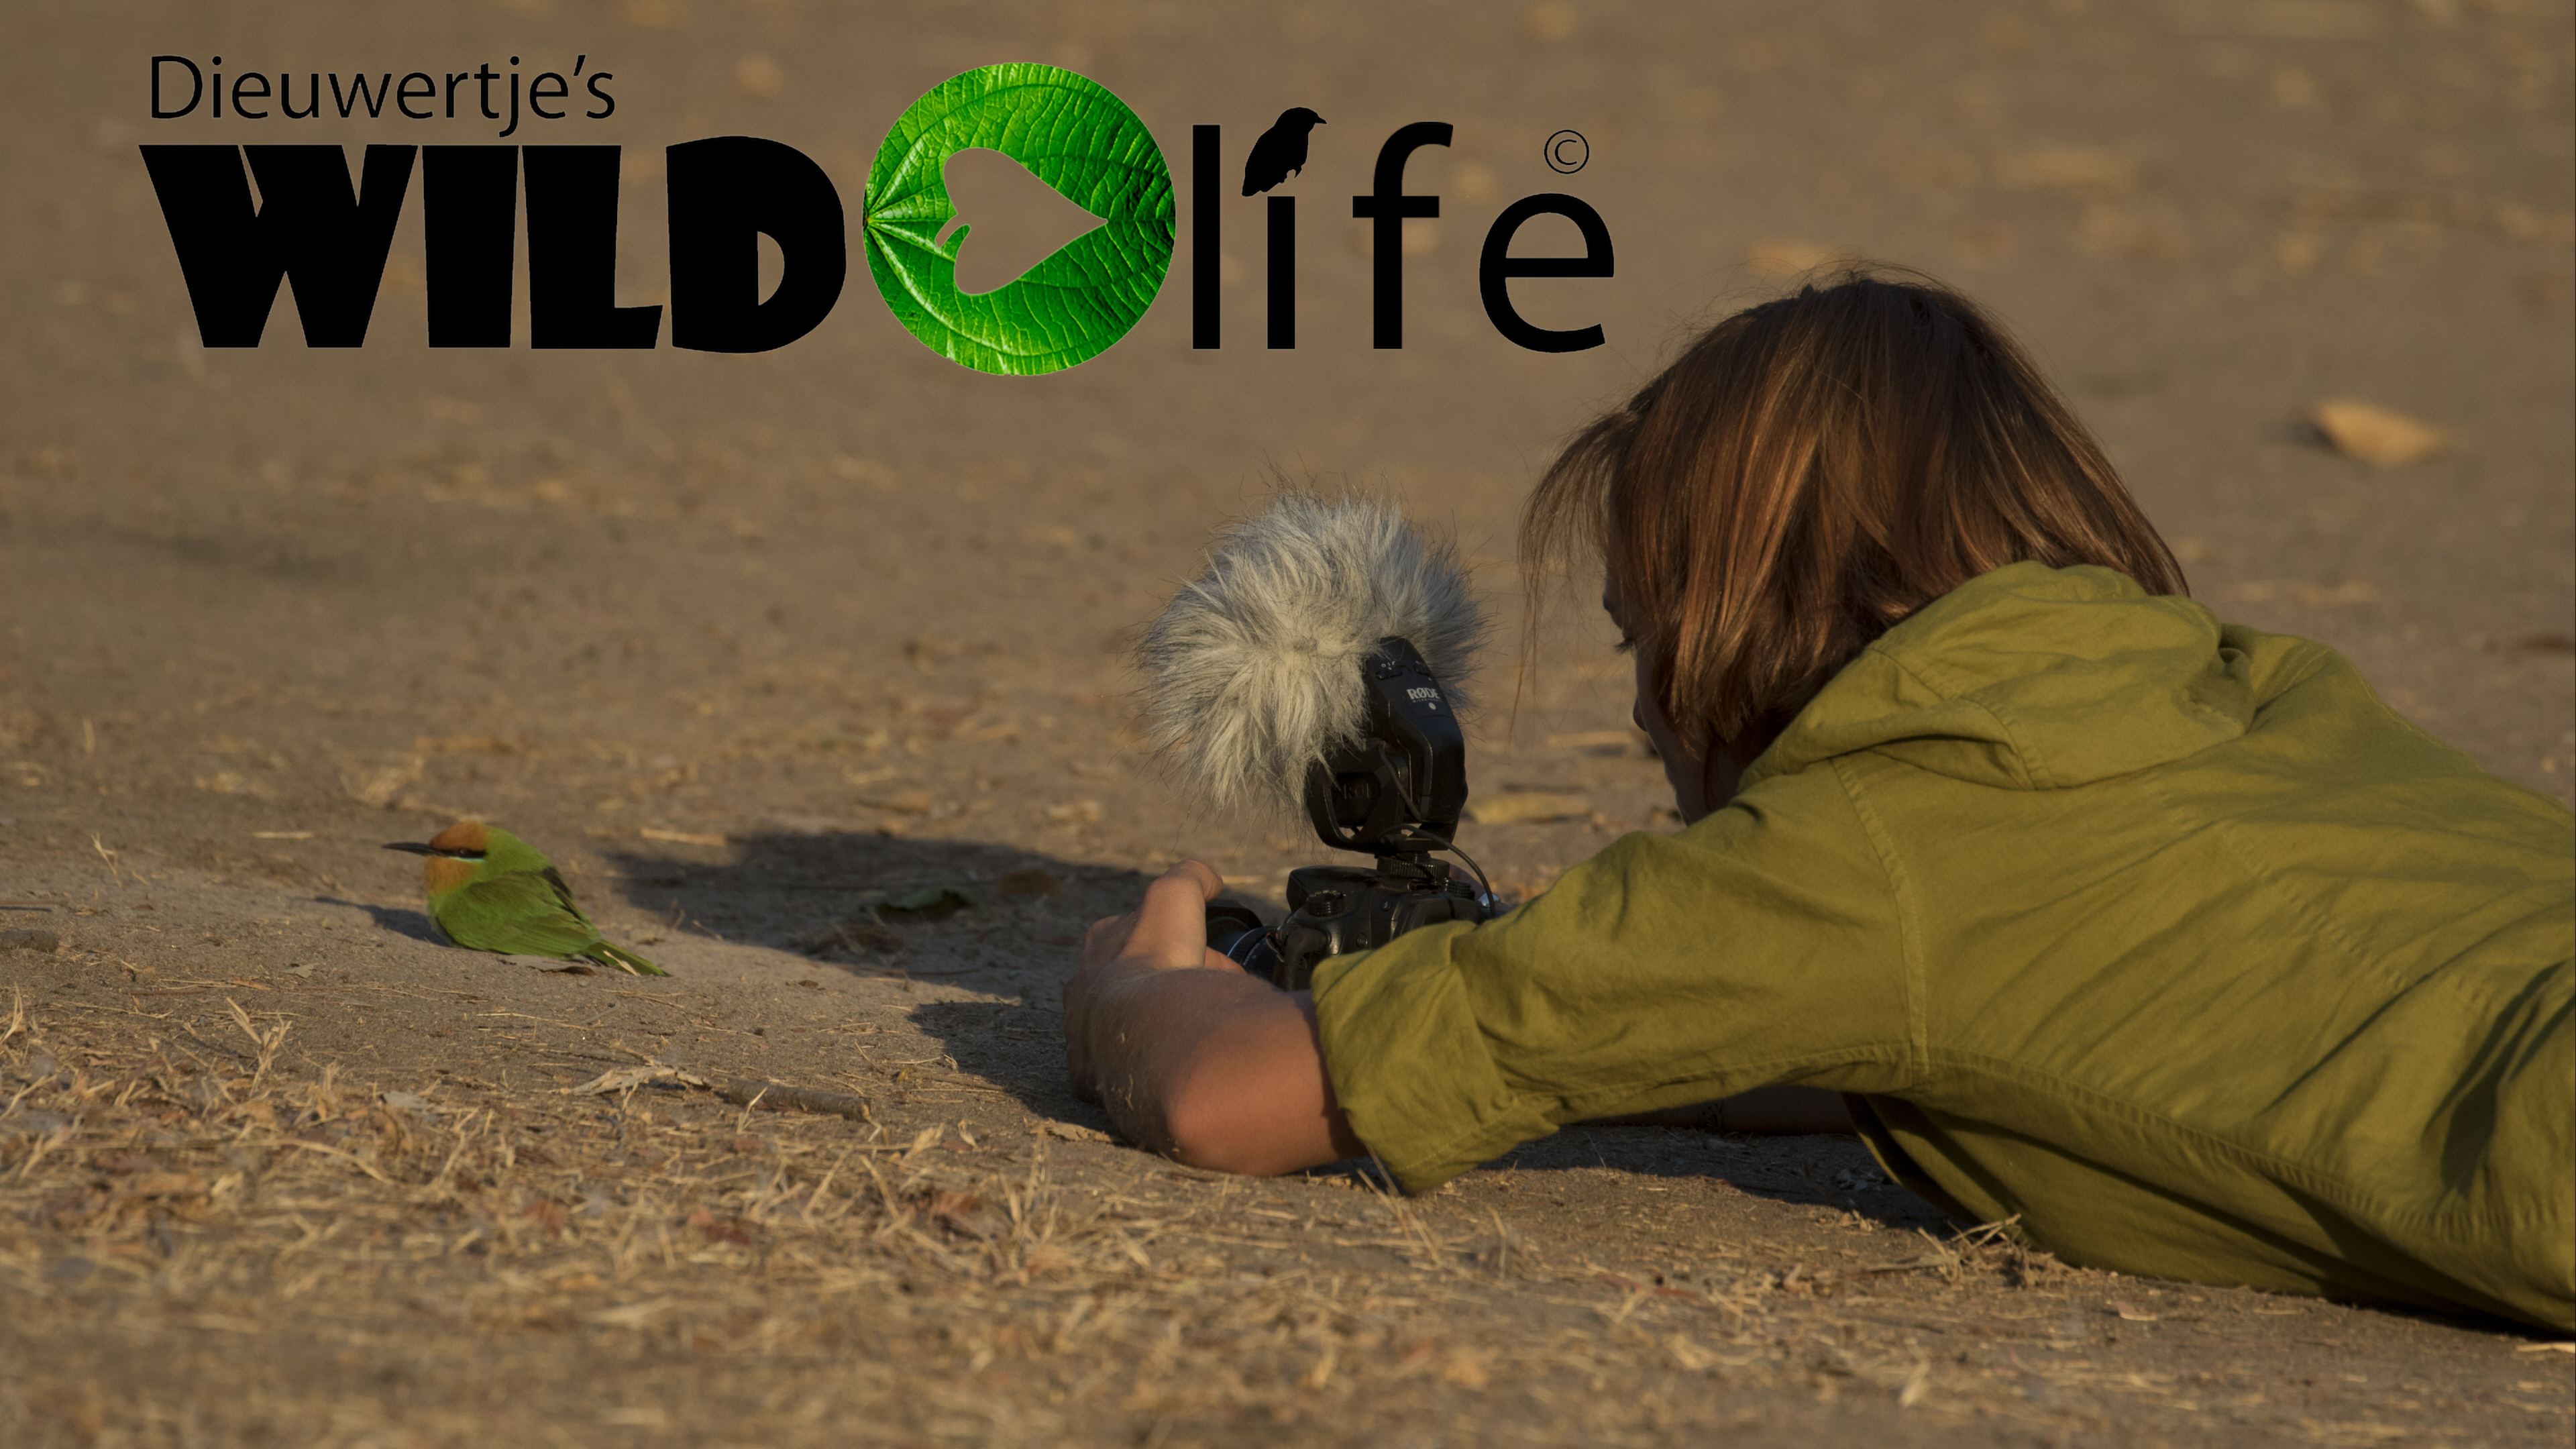 Dieuws Wildlife Stock Footage Collection